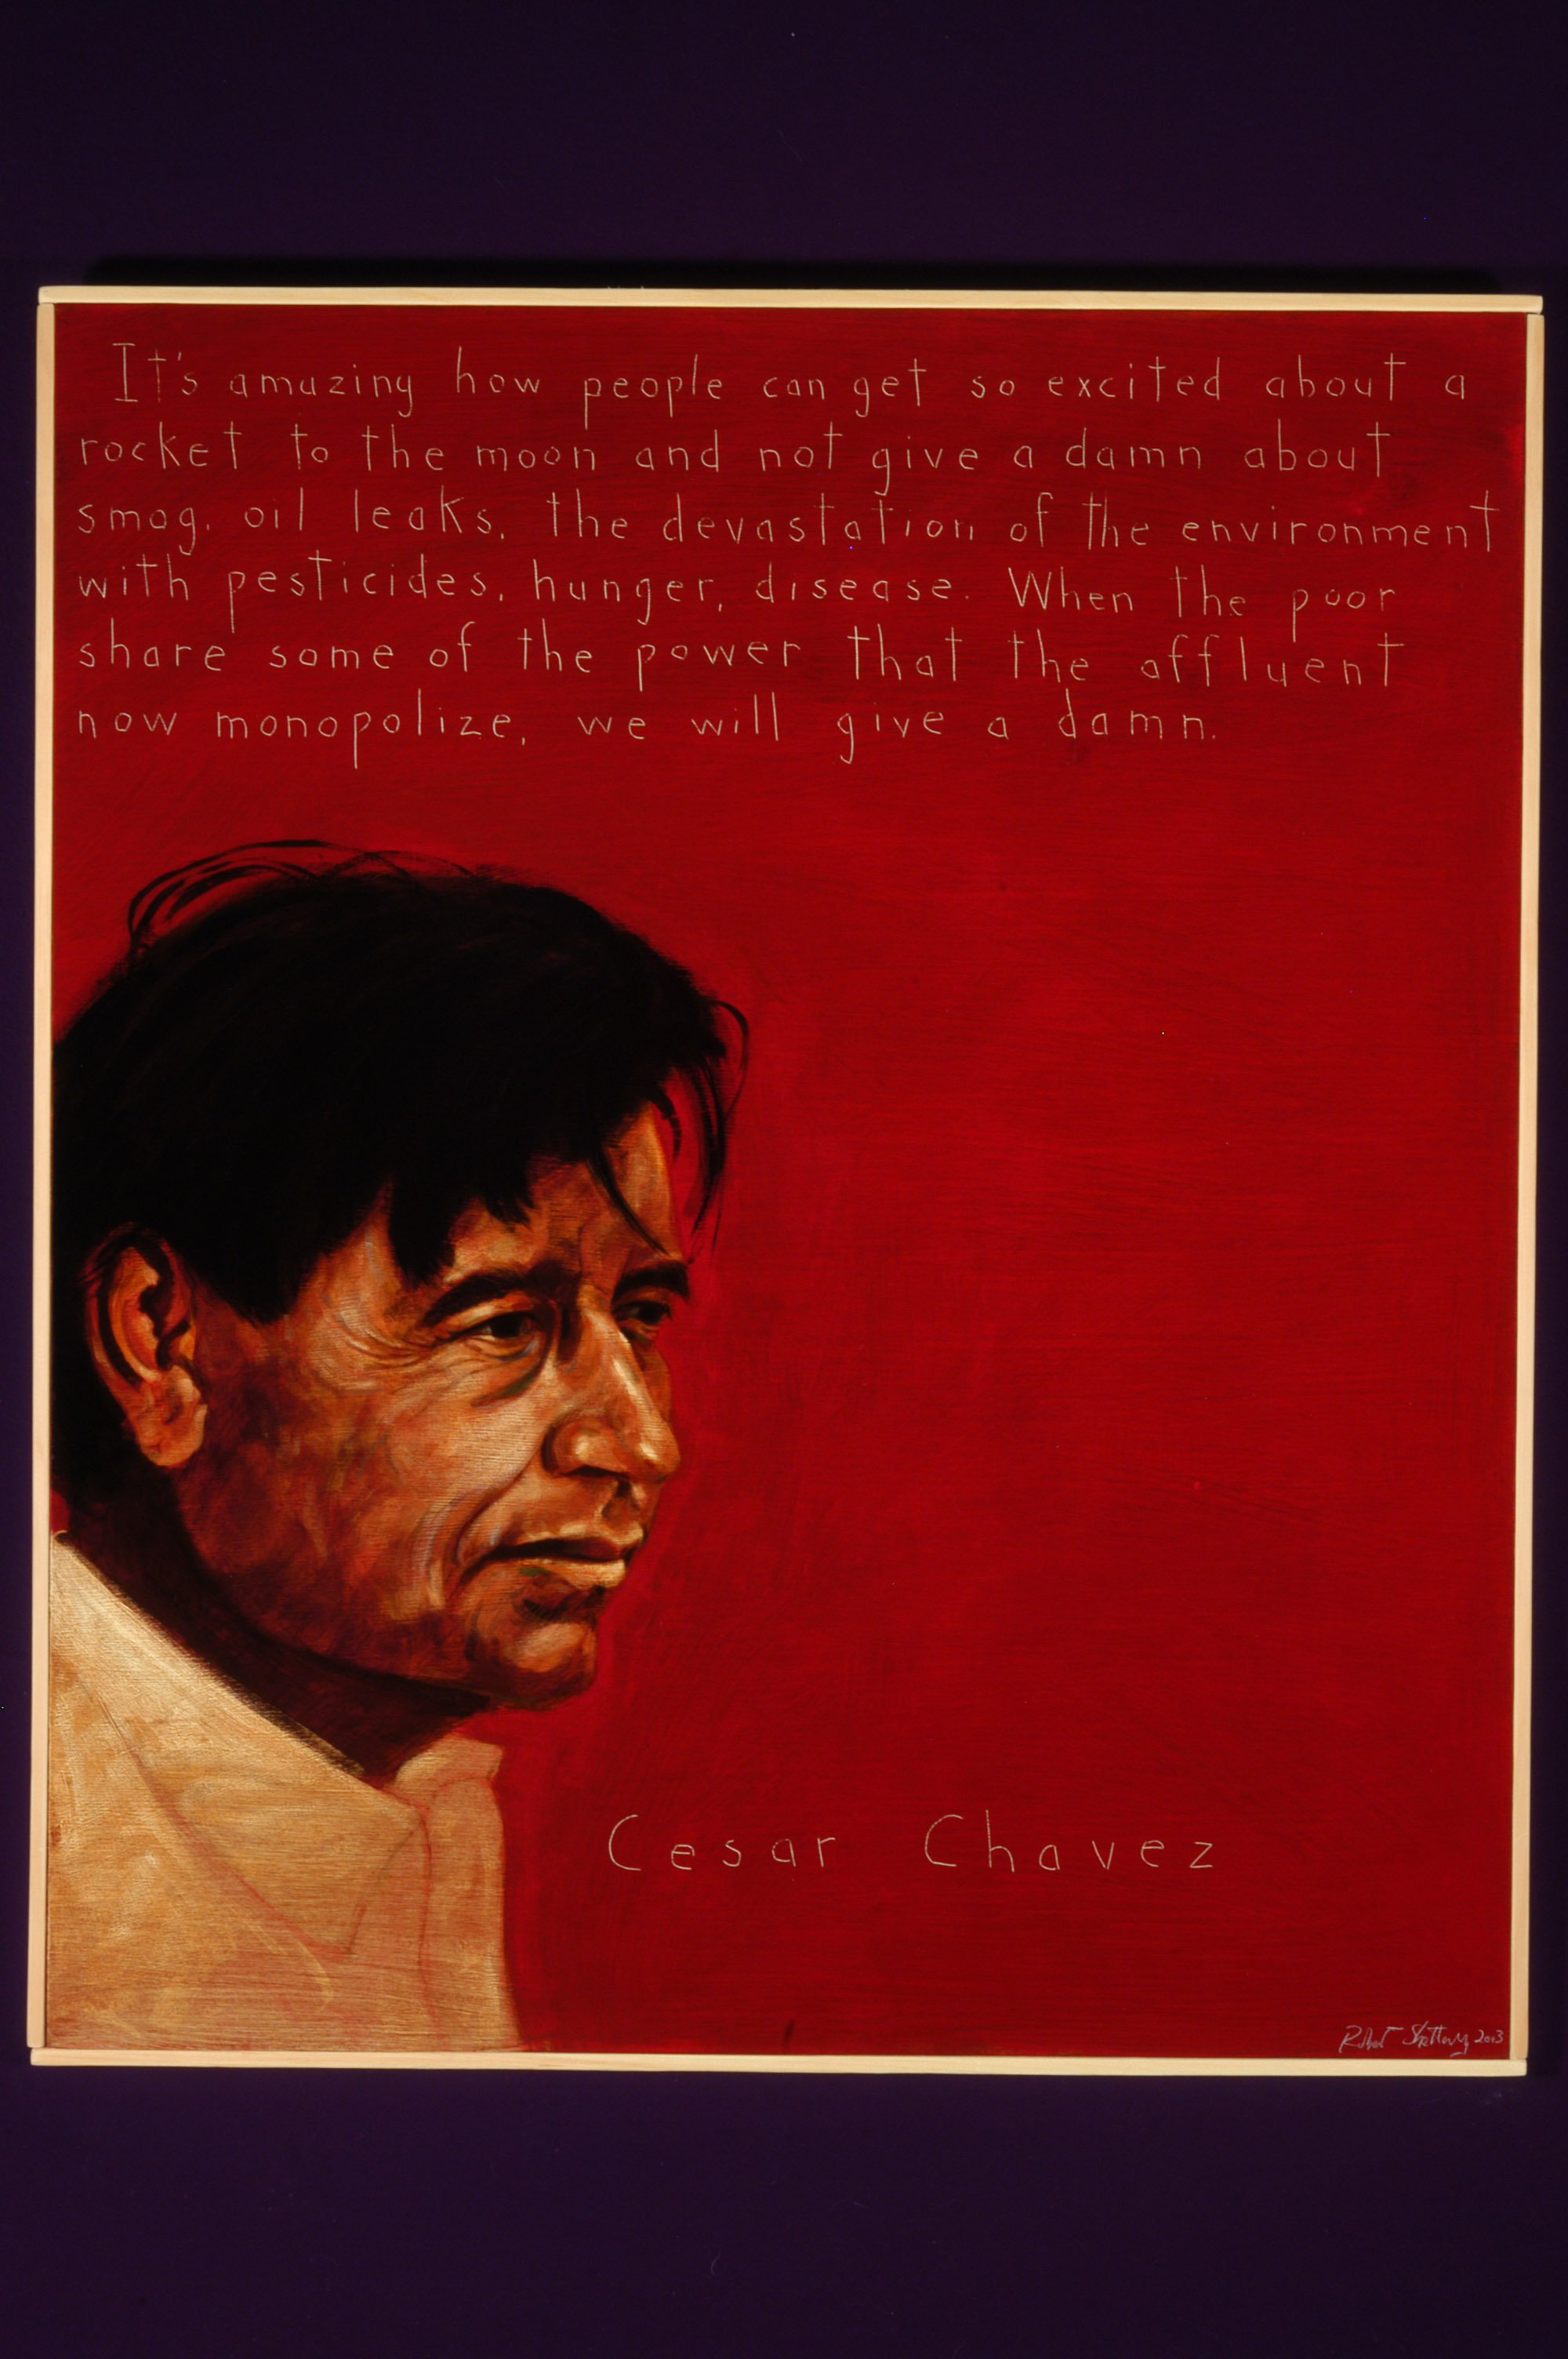 Picture of Cesar Chavez by artist Robert Shetterly, AWTT.org